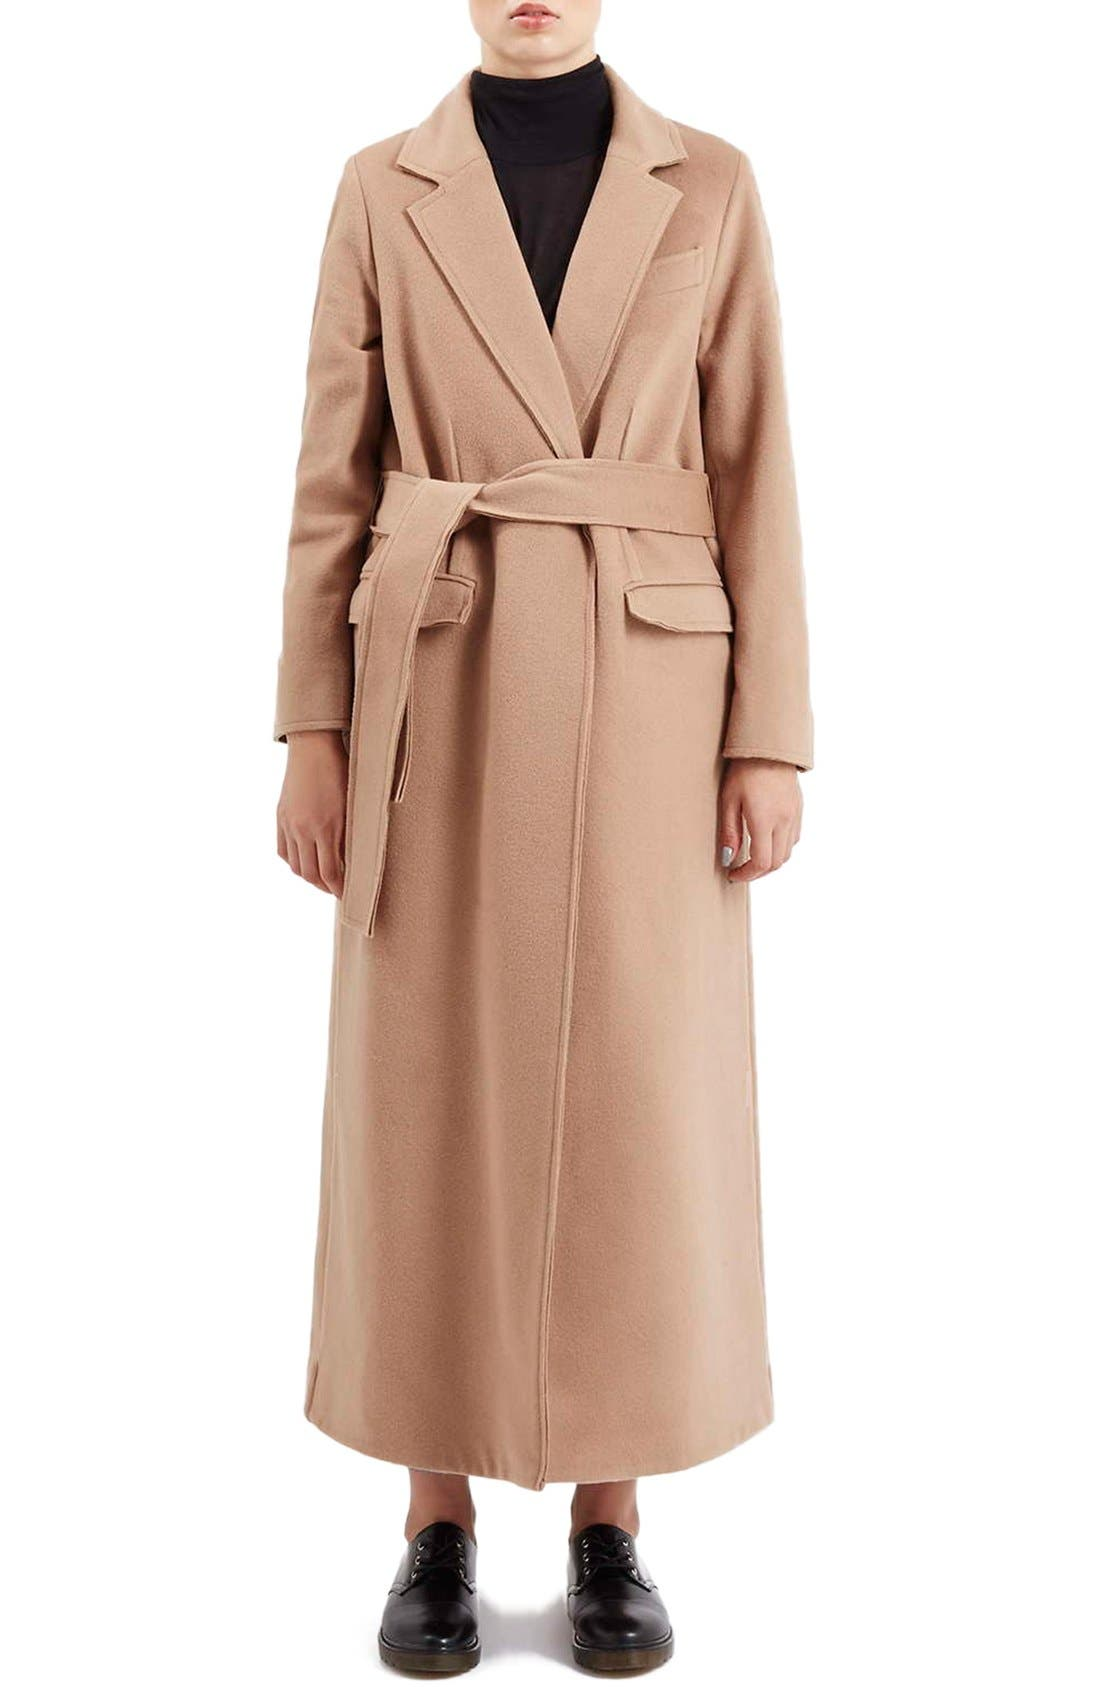 TOPSHOP BOUTIQUE, Wrap Coat, Main thumbnail 1, color, 252